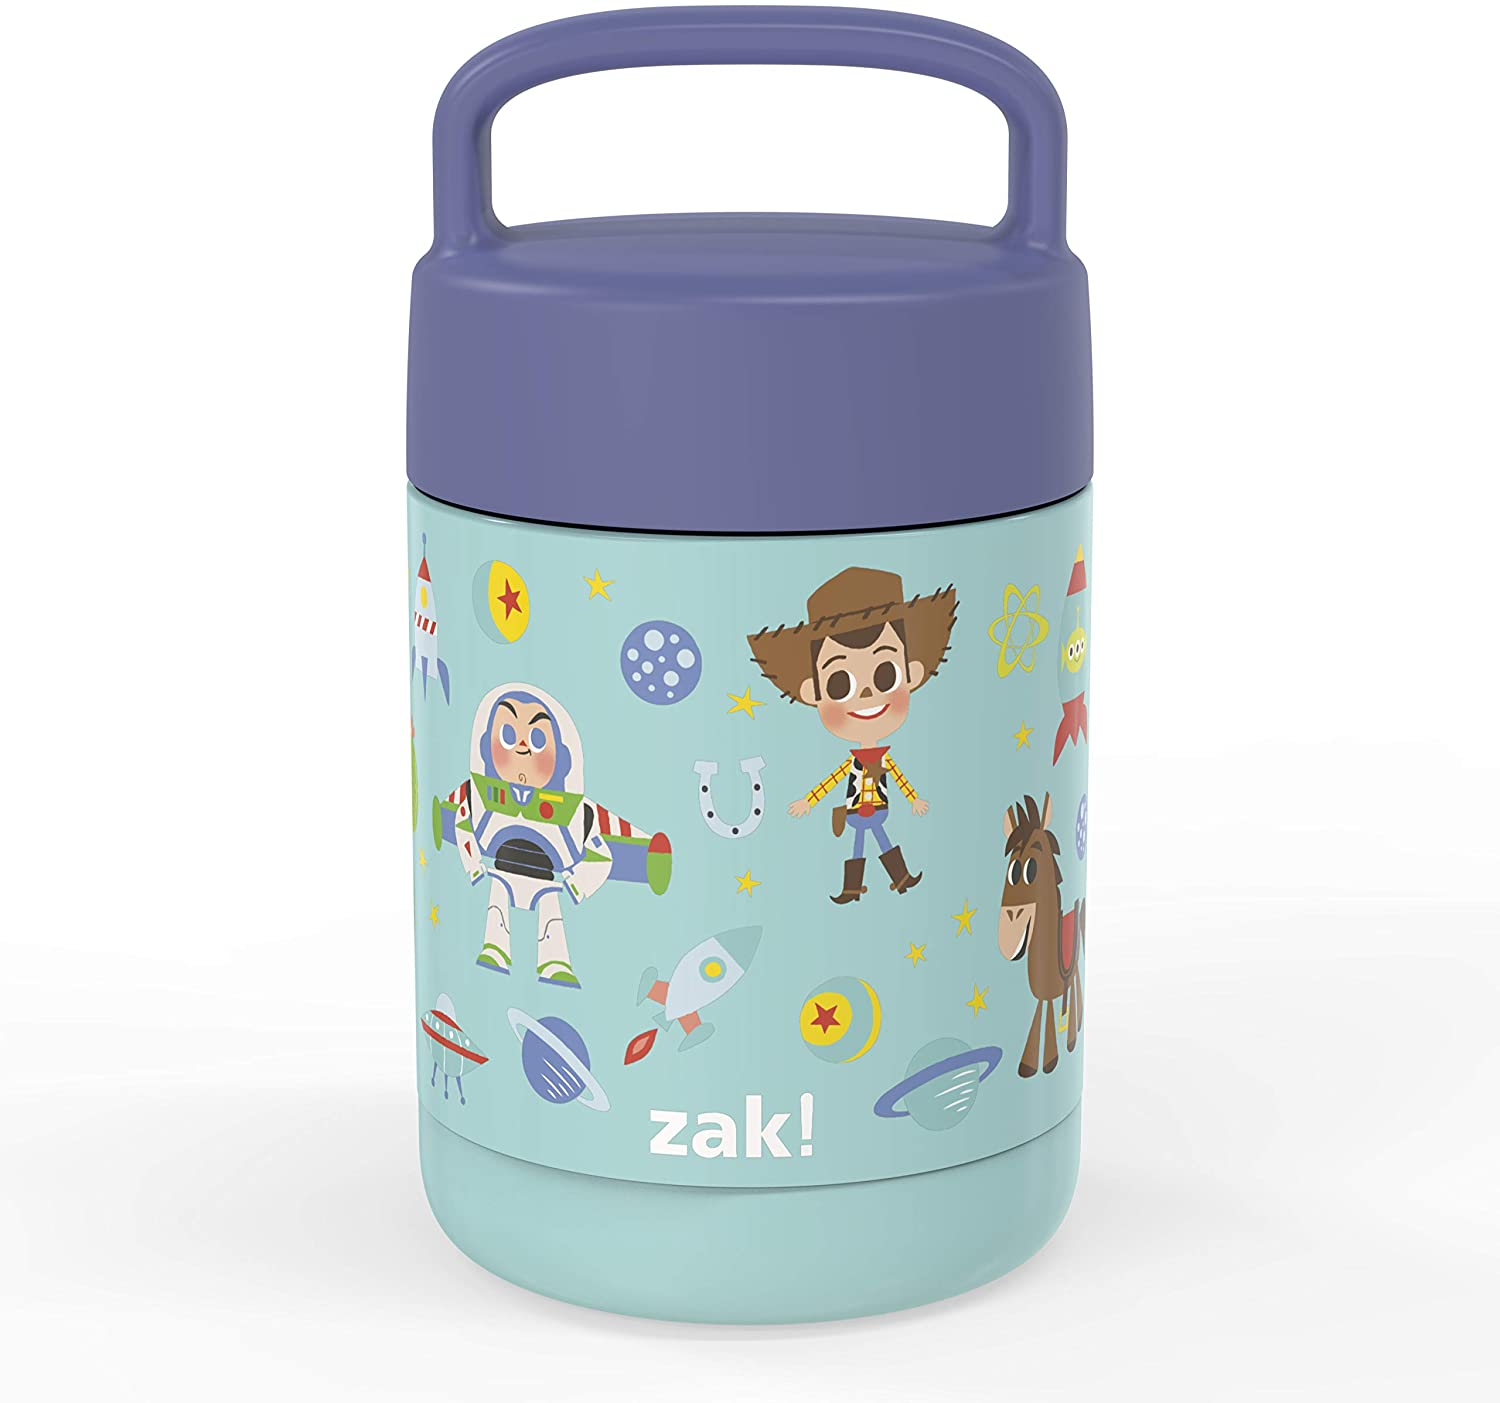 Zak Designs Disney Pixar Movie Kids' Vacuum Insulated Stainless Steel Food Jar with Carry Handle, Thermal Container for Travel Meals and Lunch On The Go, 12 oz, Toy Story 4